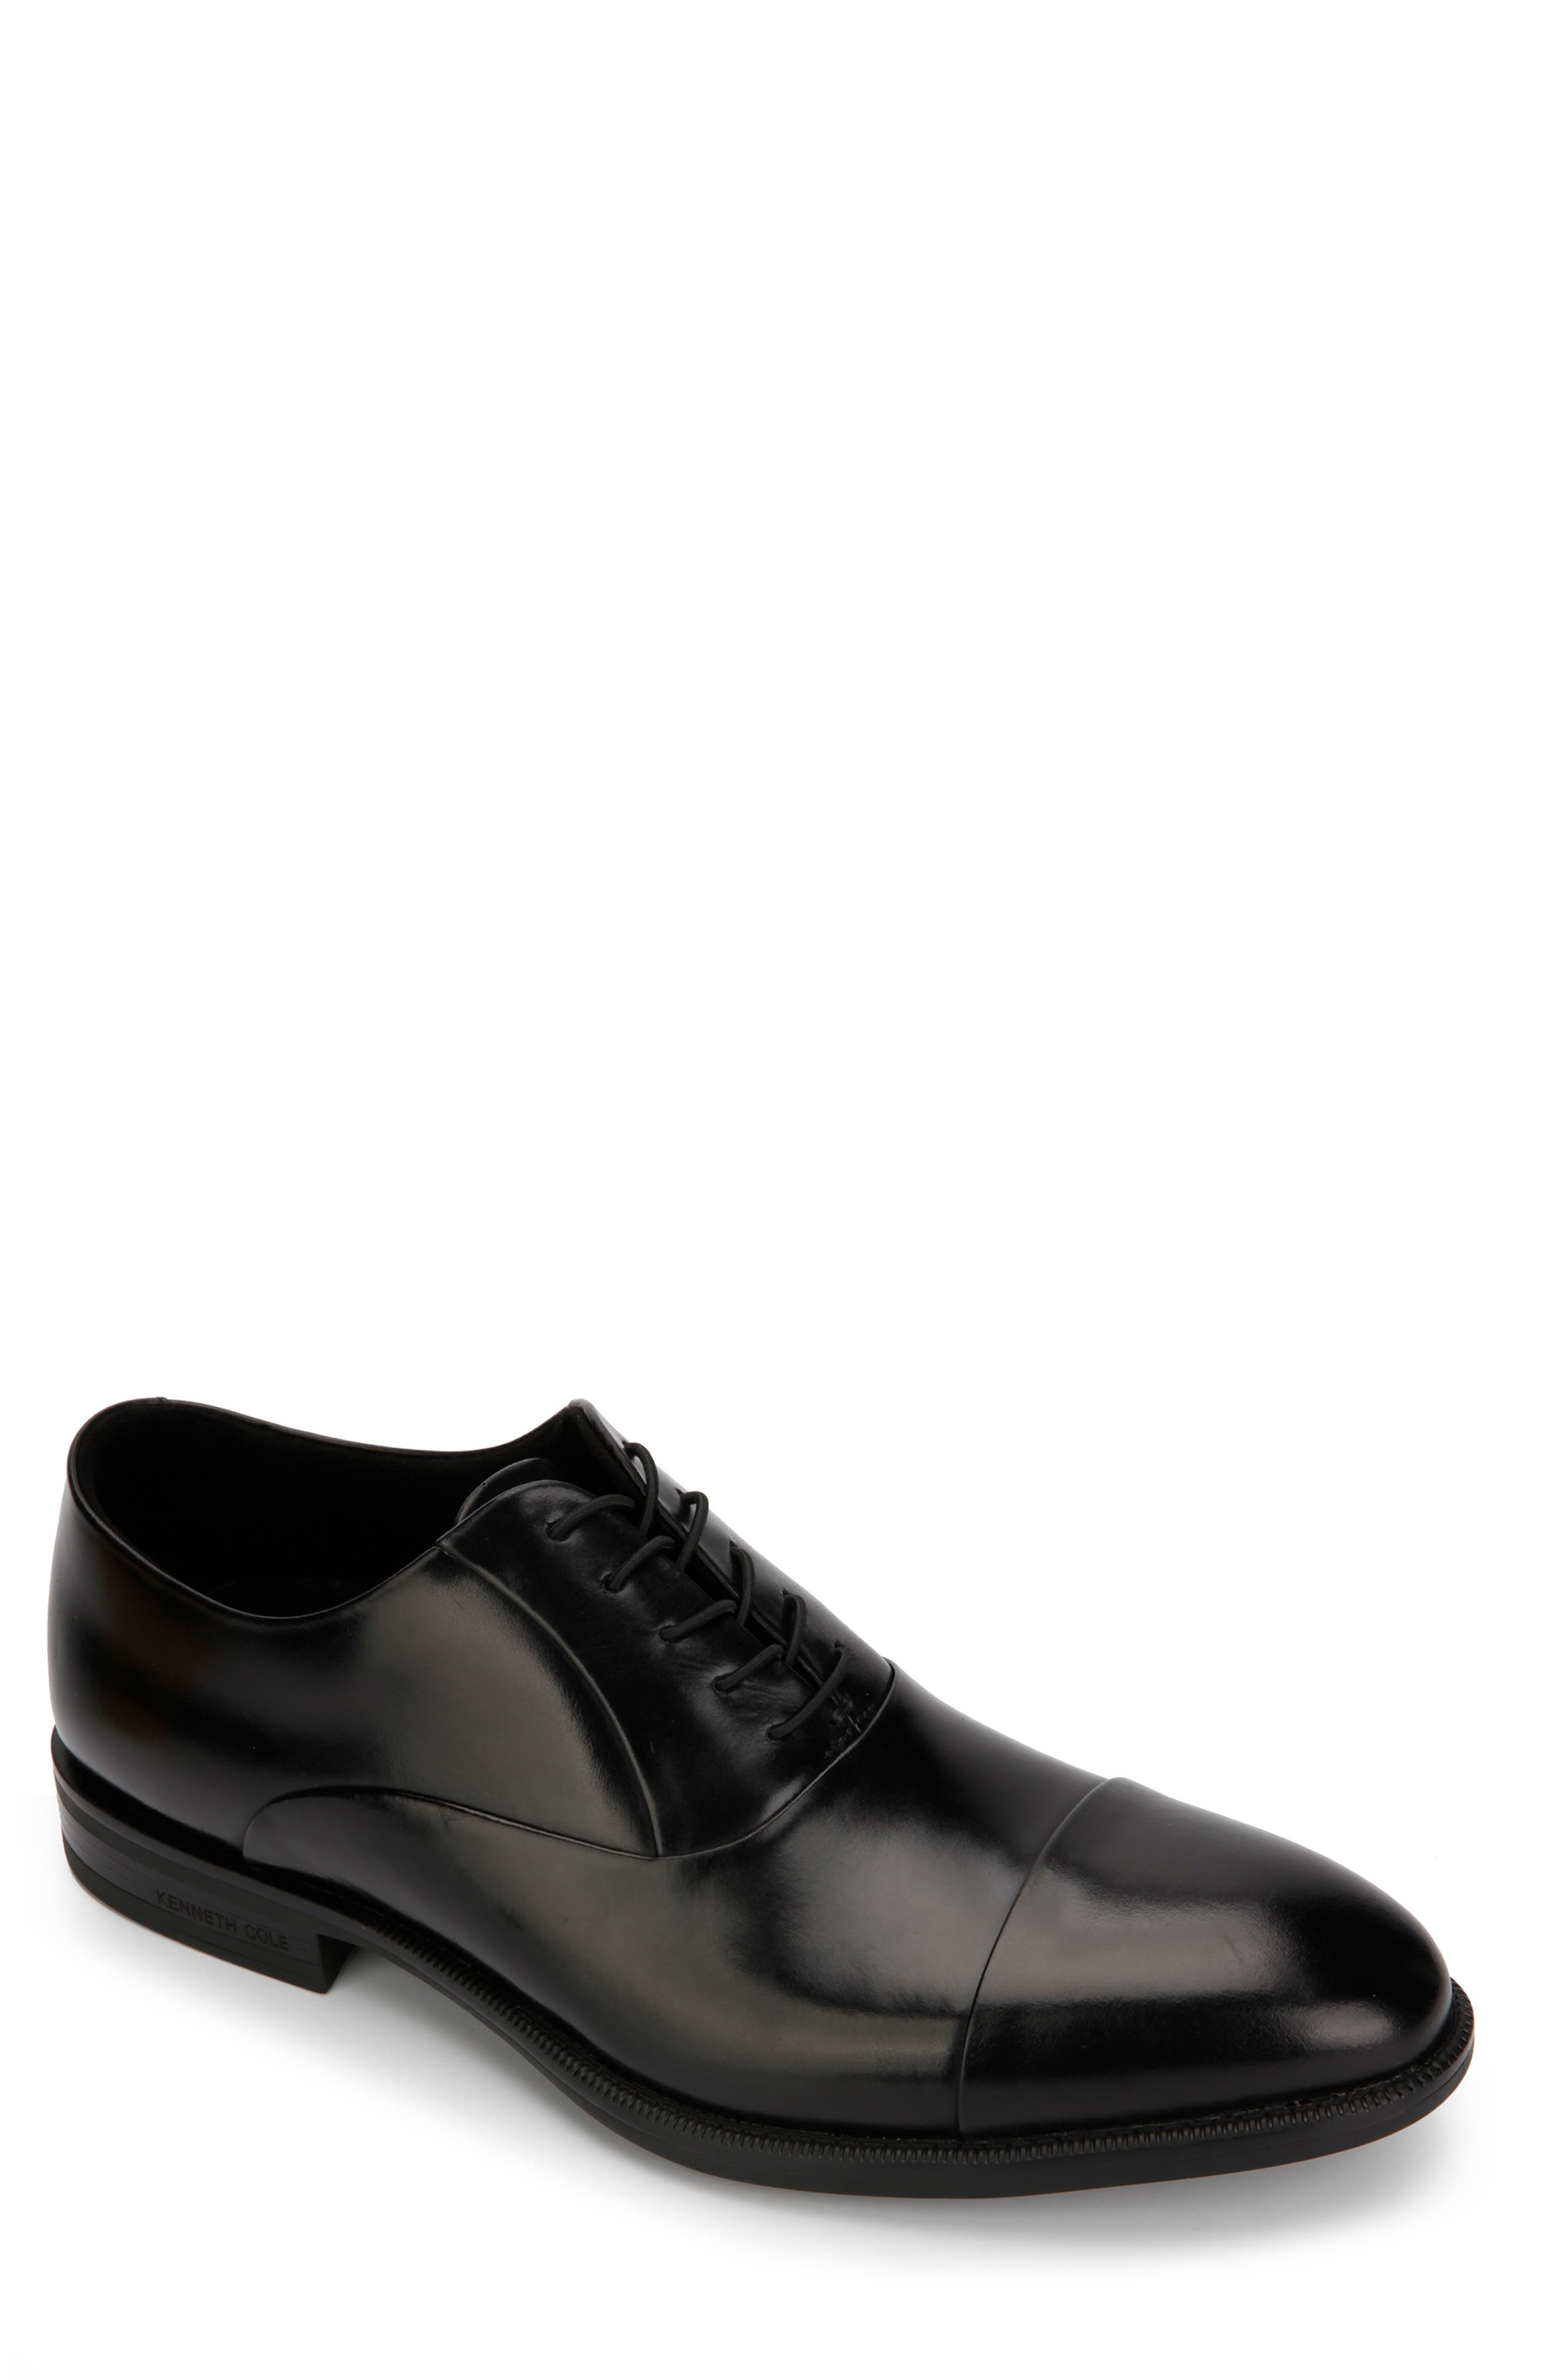 KENNETH COLE NEW YORK, Futurepod Cap Toe Oxford, Main thumbnail 1, color, BLACK LEATHER